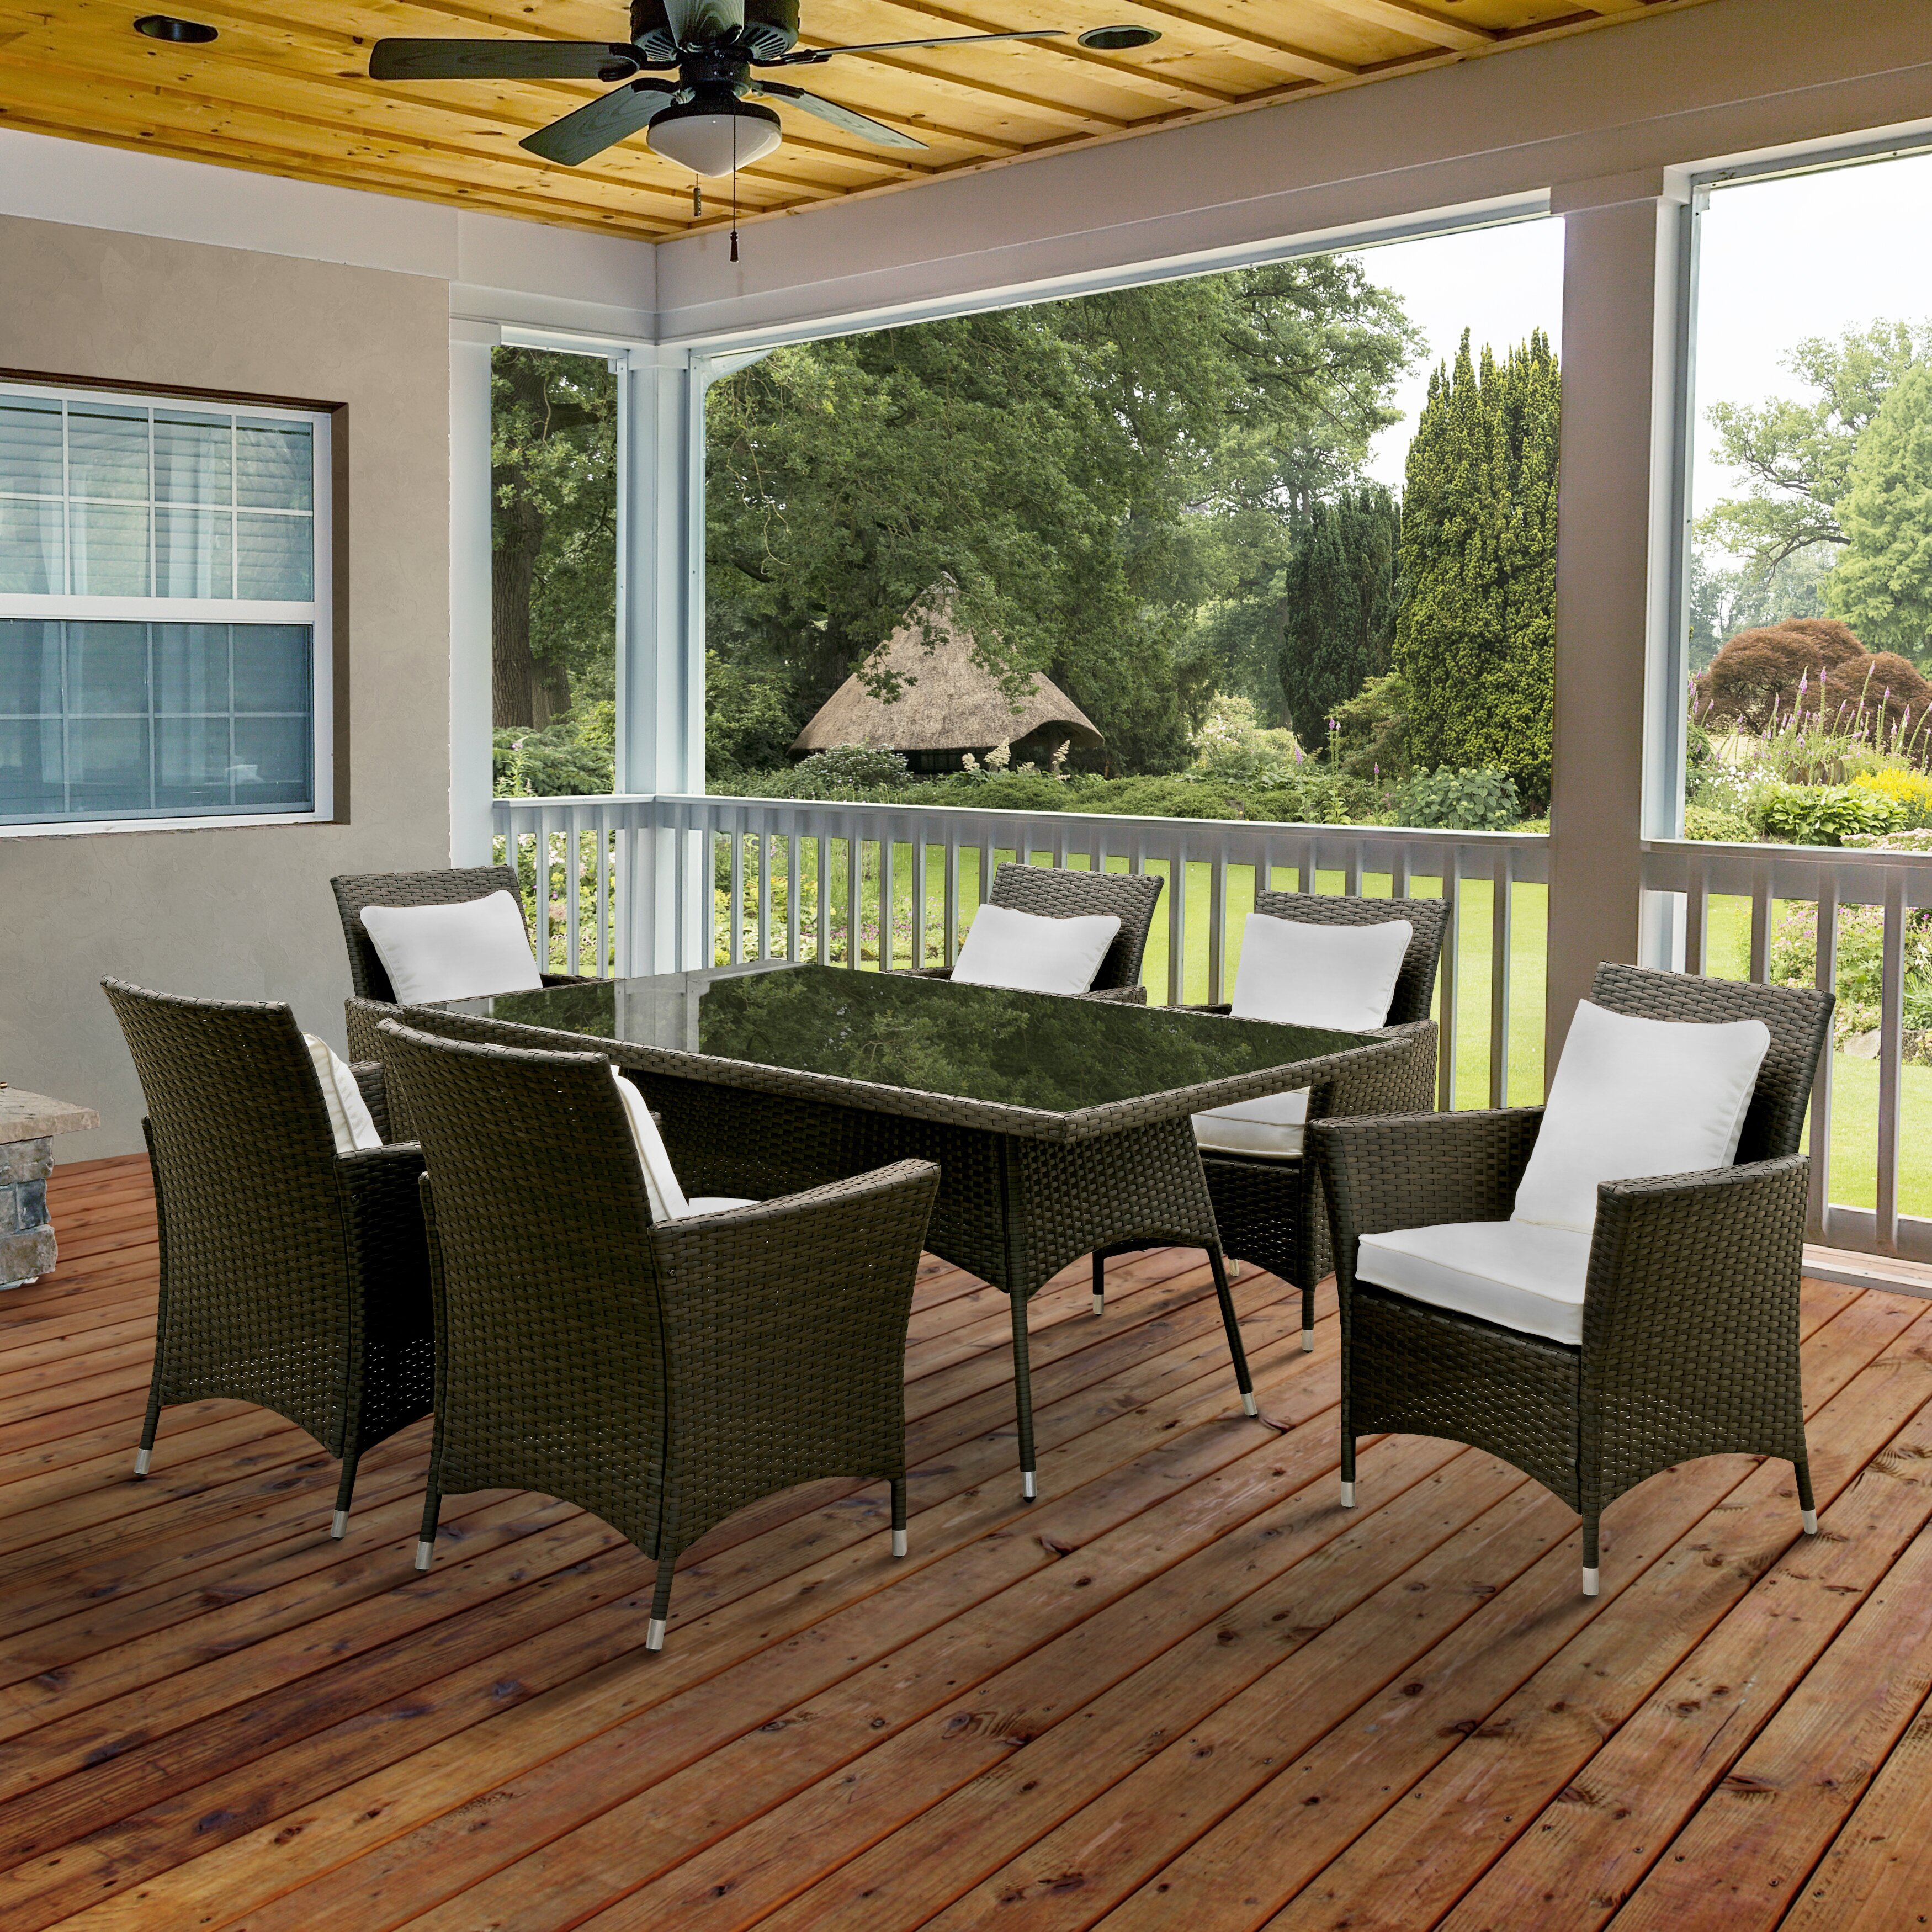 Dining Table Co Darby Home Co Derby Dining Table Reviews Wayfair